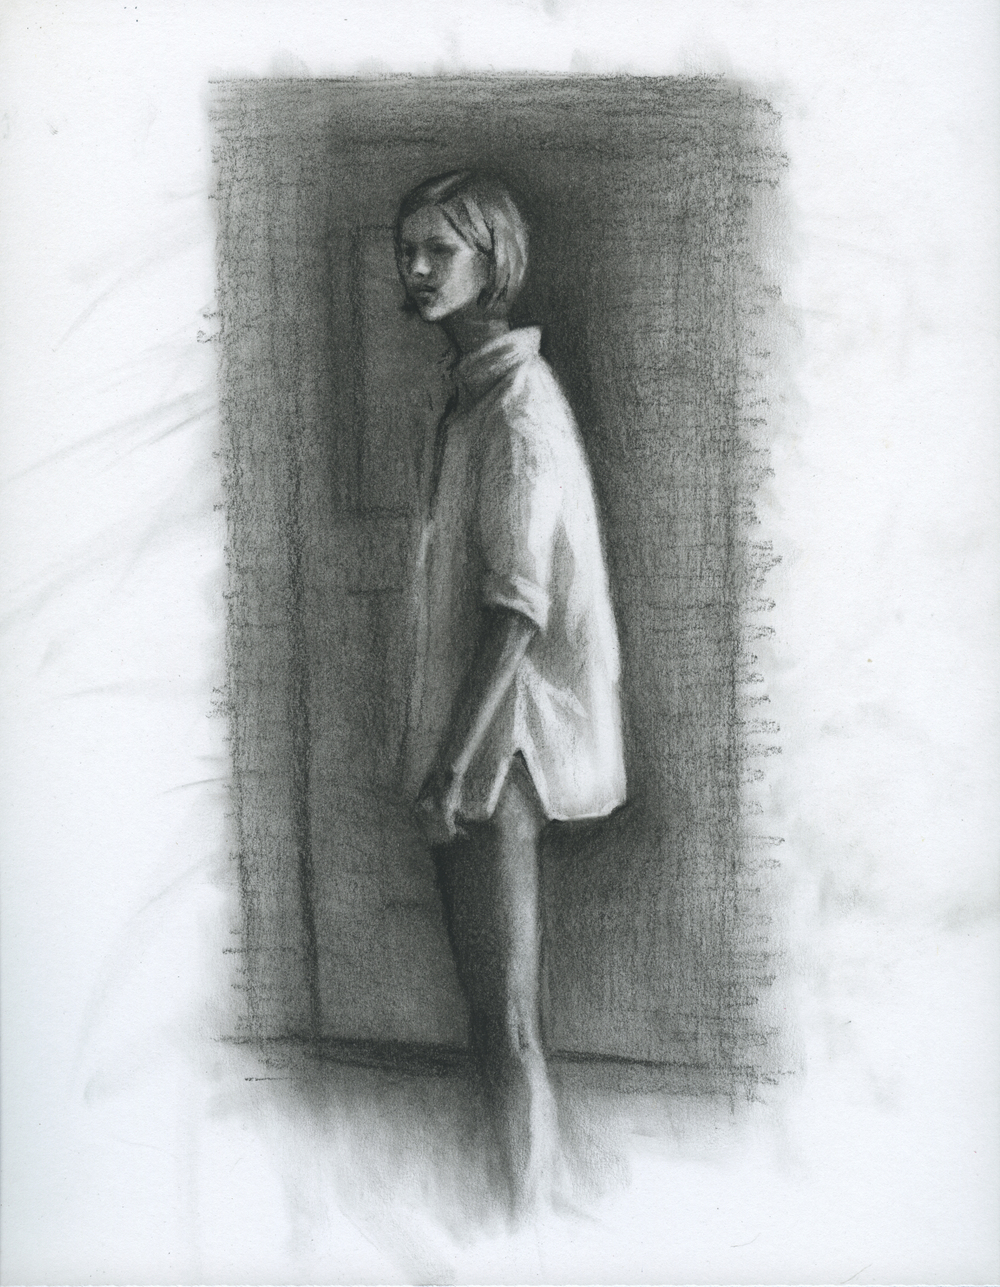 """The Mind Goes Clean, charcoal on paper, 11"""" x 8.5"""", 2014"""